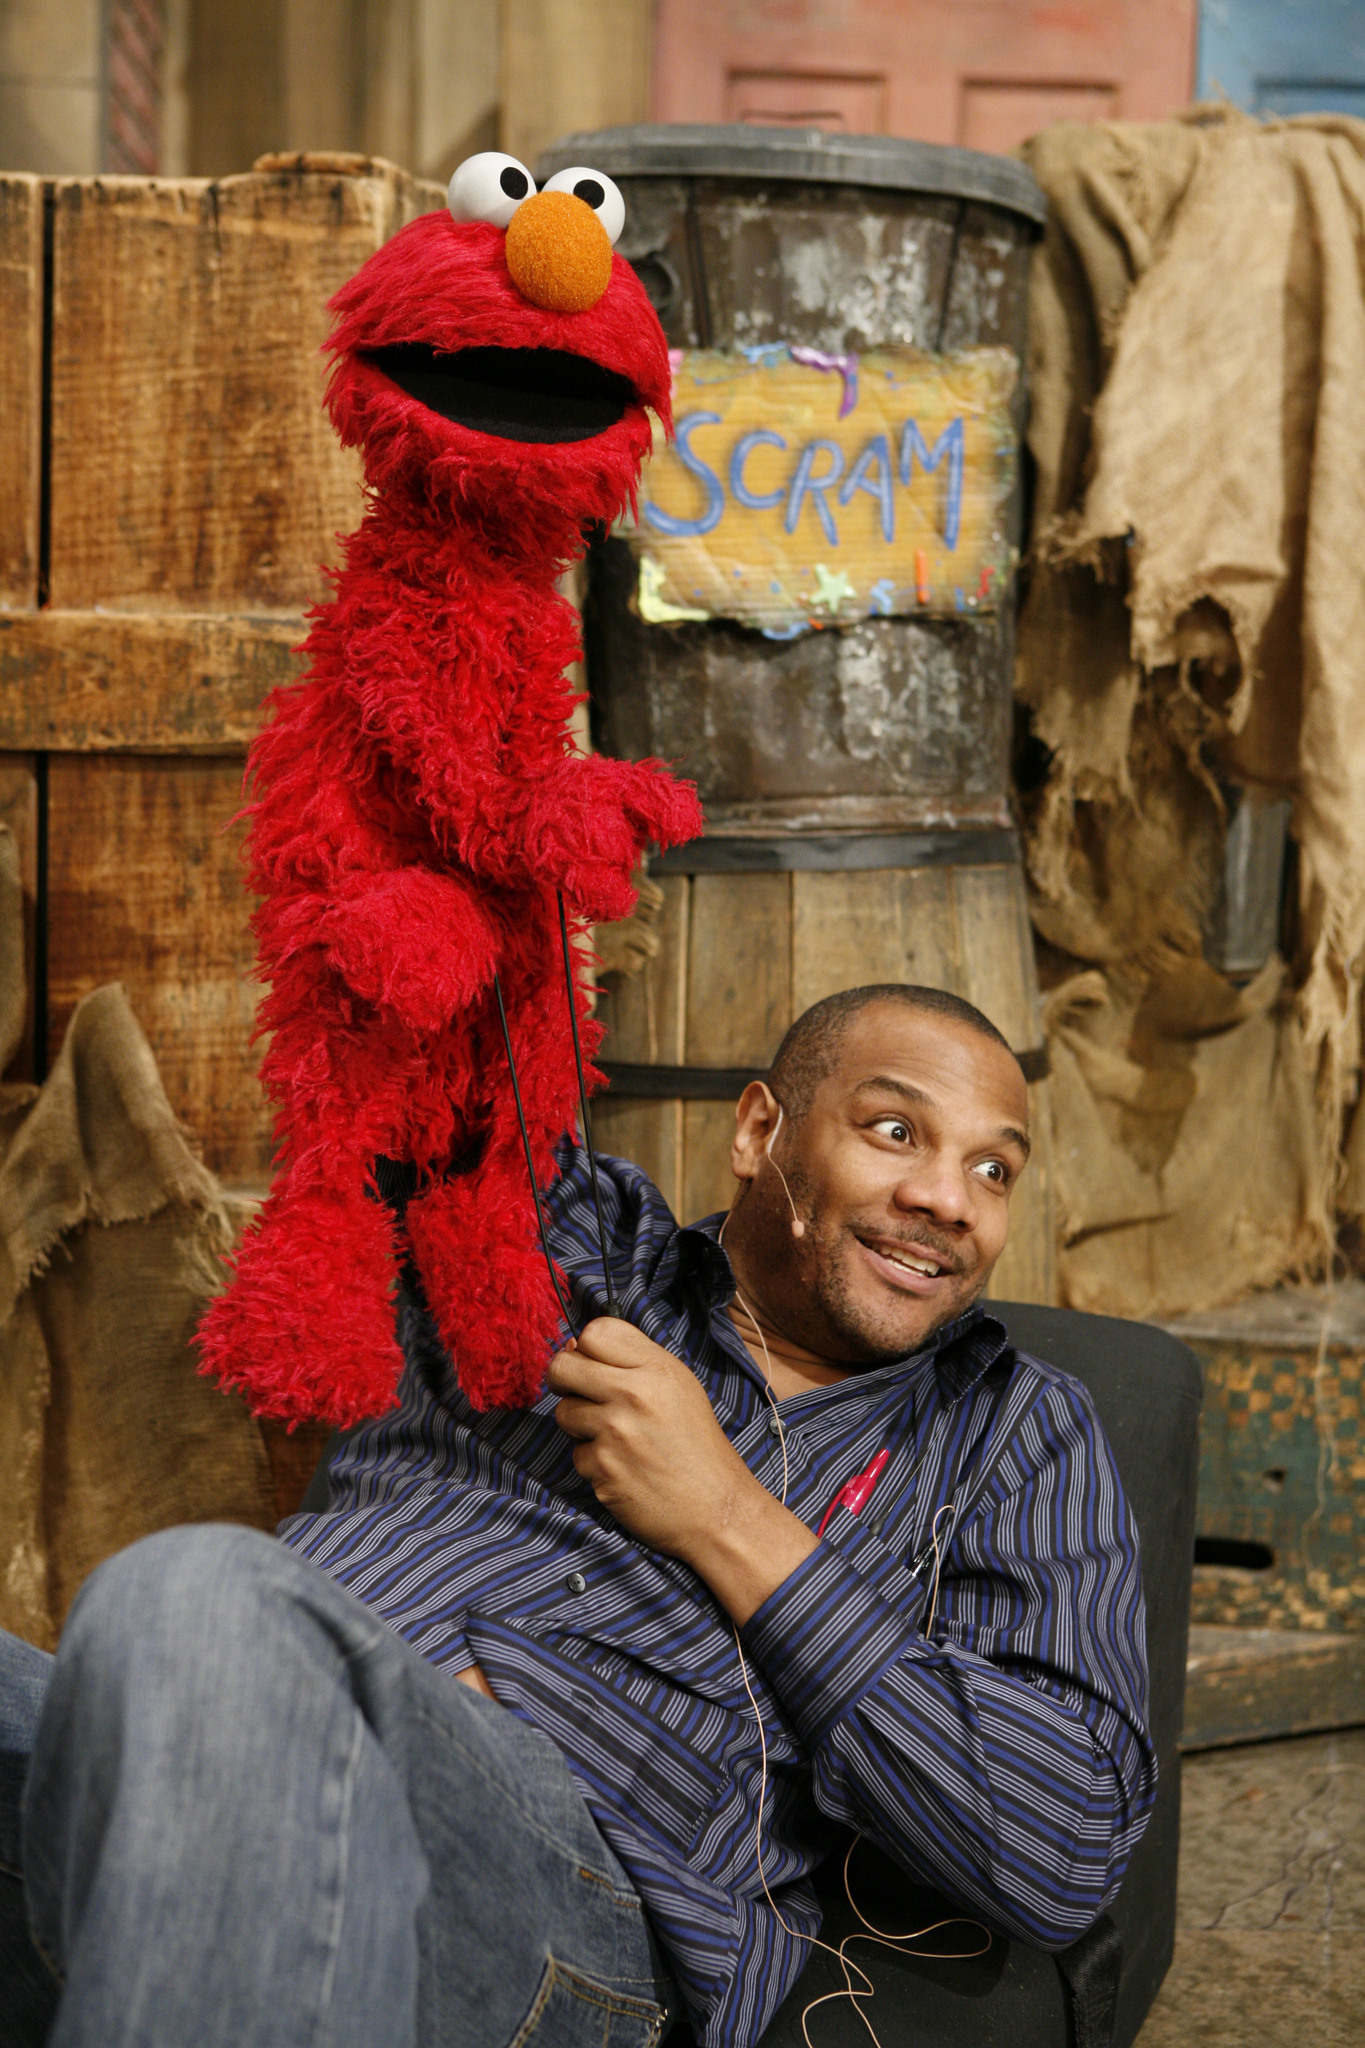 Kevin Clash Imdb Cuddle Me Pajamas Elmo Look And Find